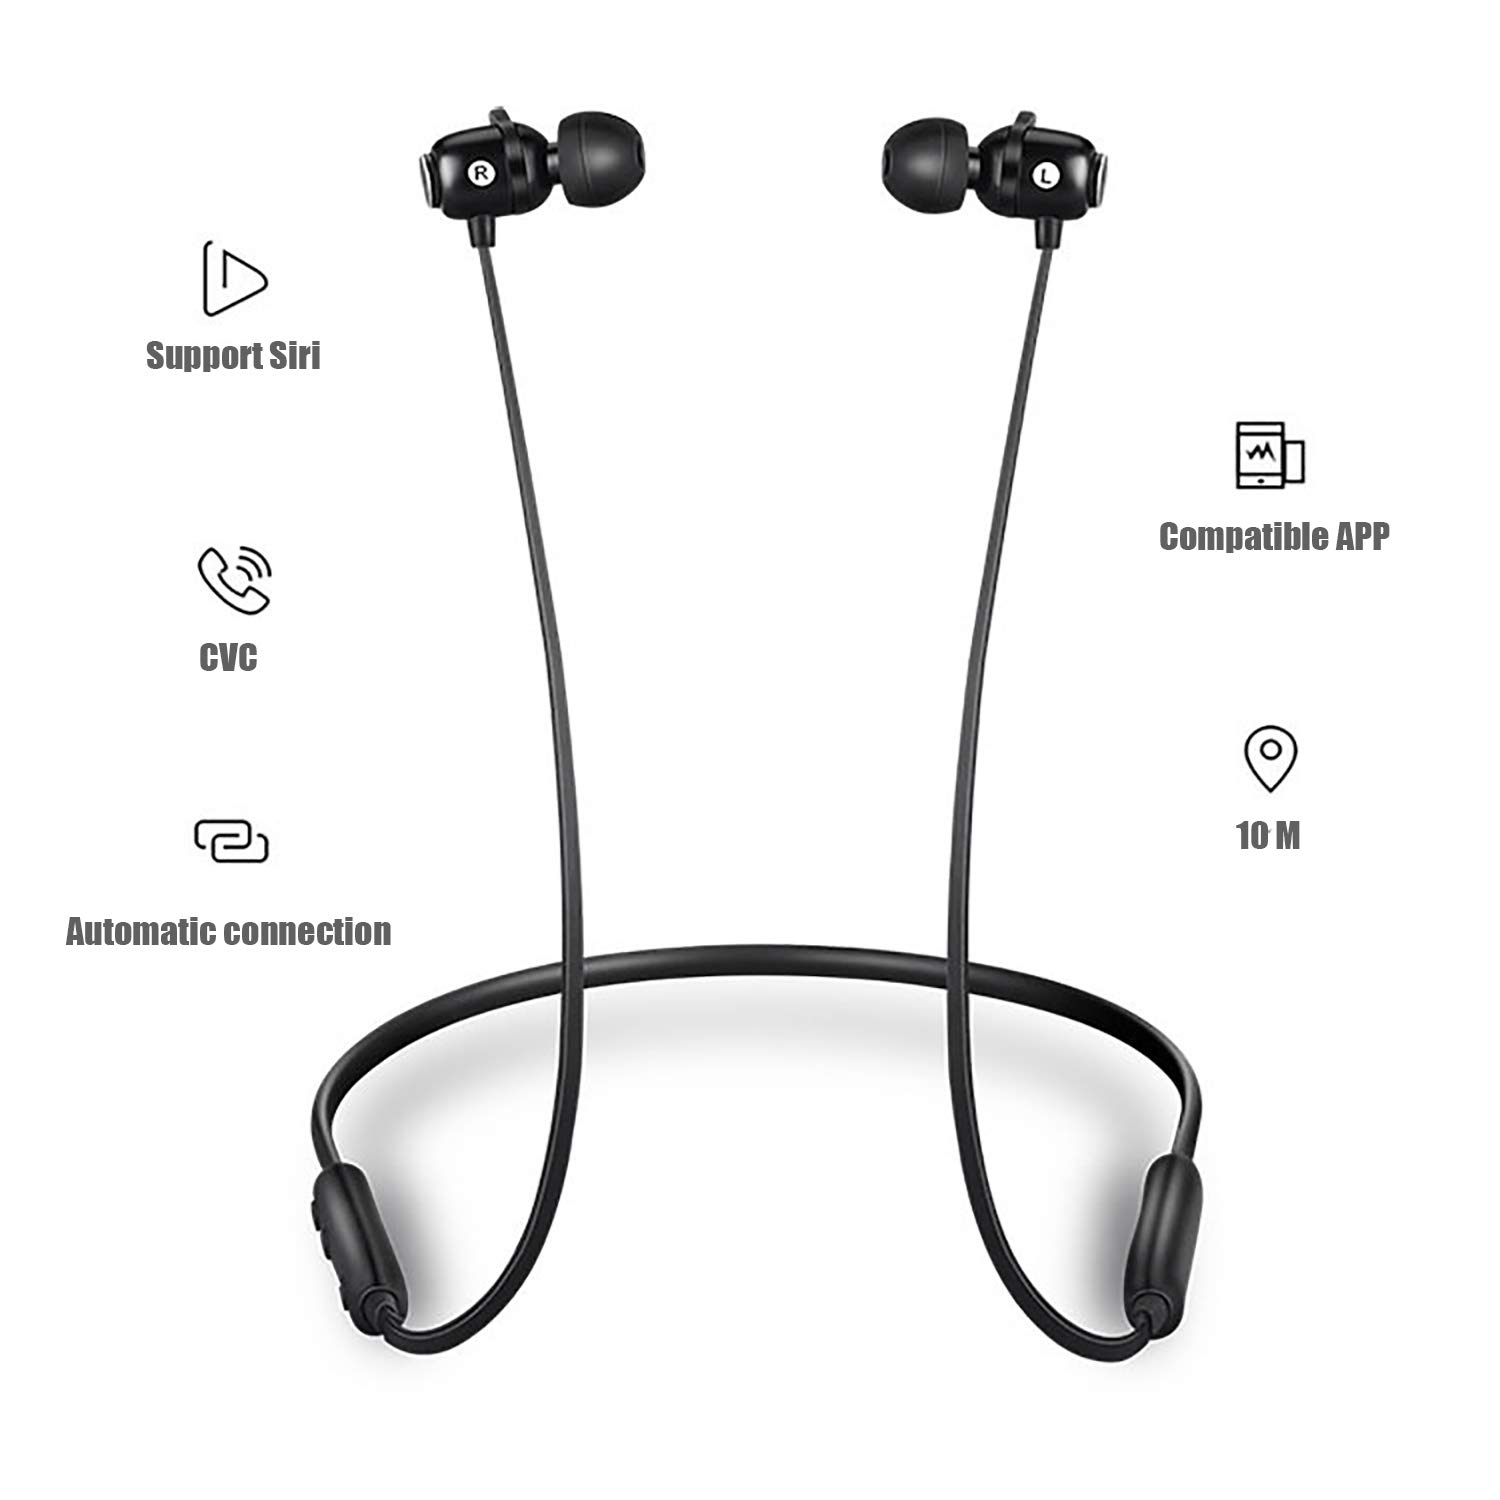 Bluetooth Headphones,Wireless Earbuds Bluetooth 5.0, IPX5 Waterproof,Magnetic,HiFi Bass Stereo Sweatproof Earbuds w Mic, Noise Cancelling Headset for Workout, Running, Gym, 8 Hours Play Time